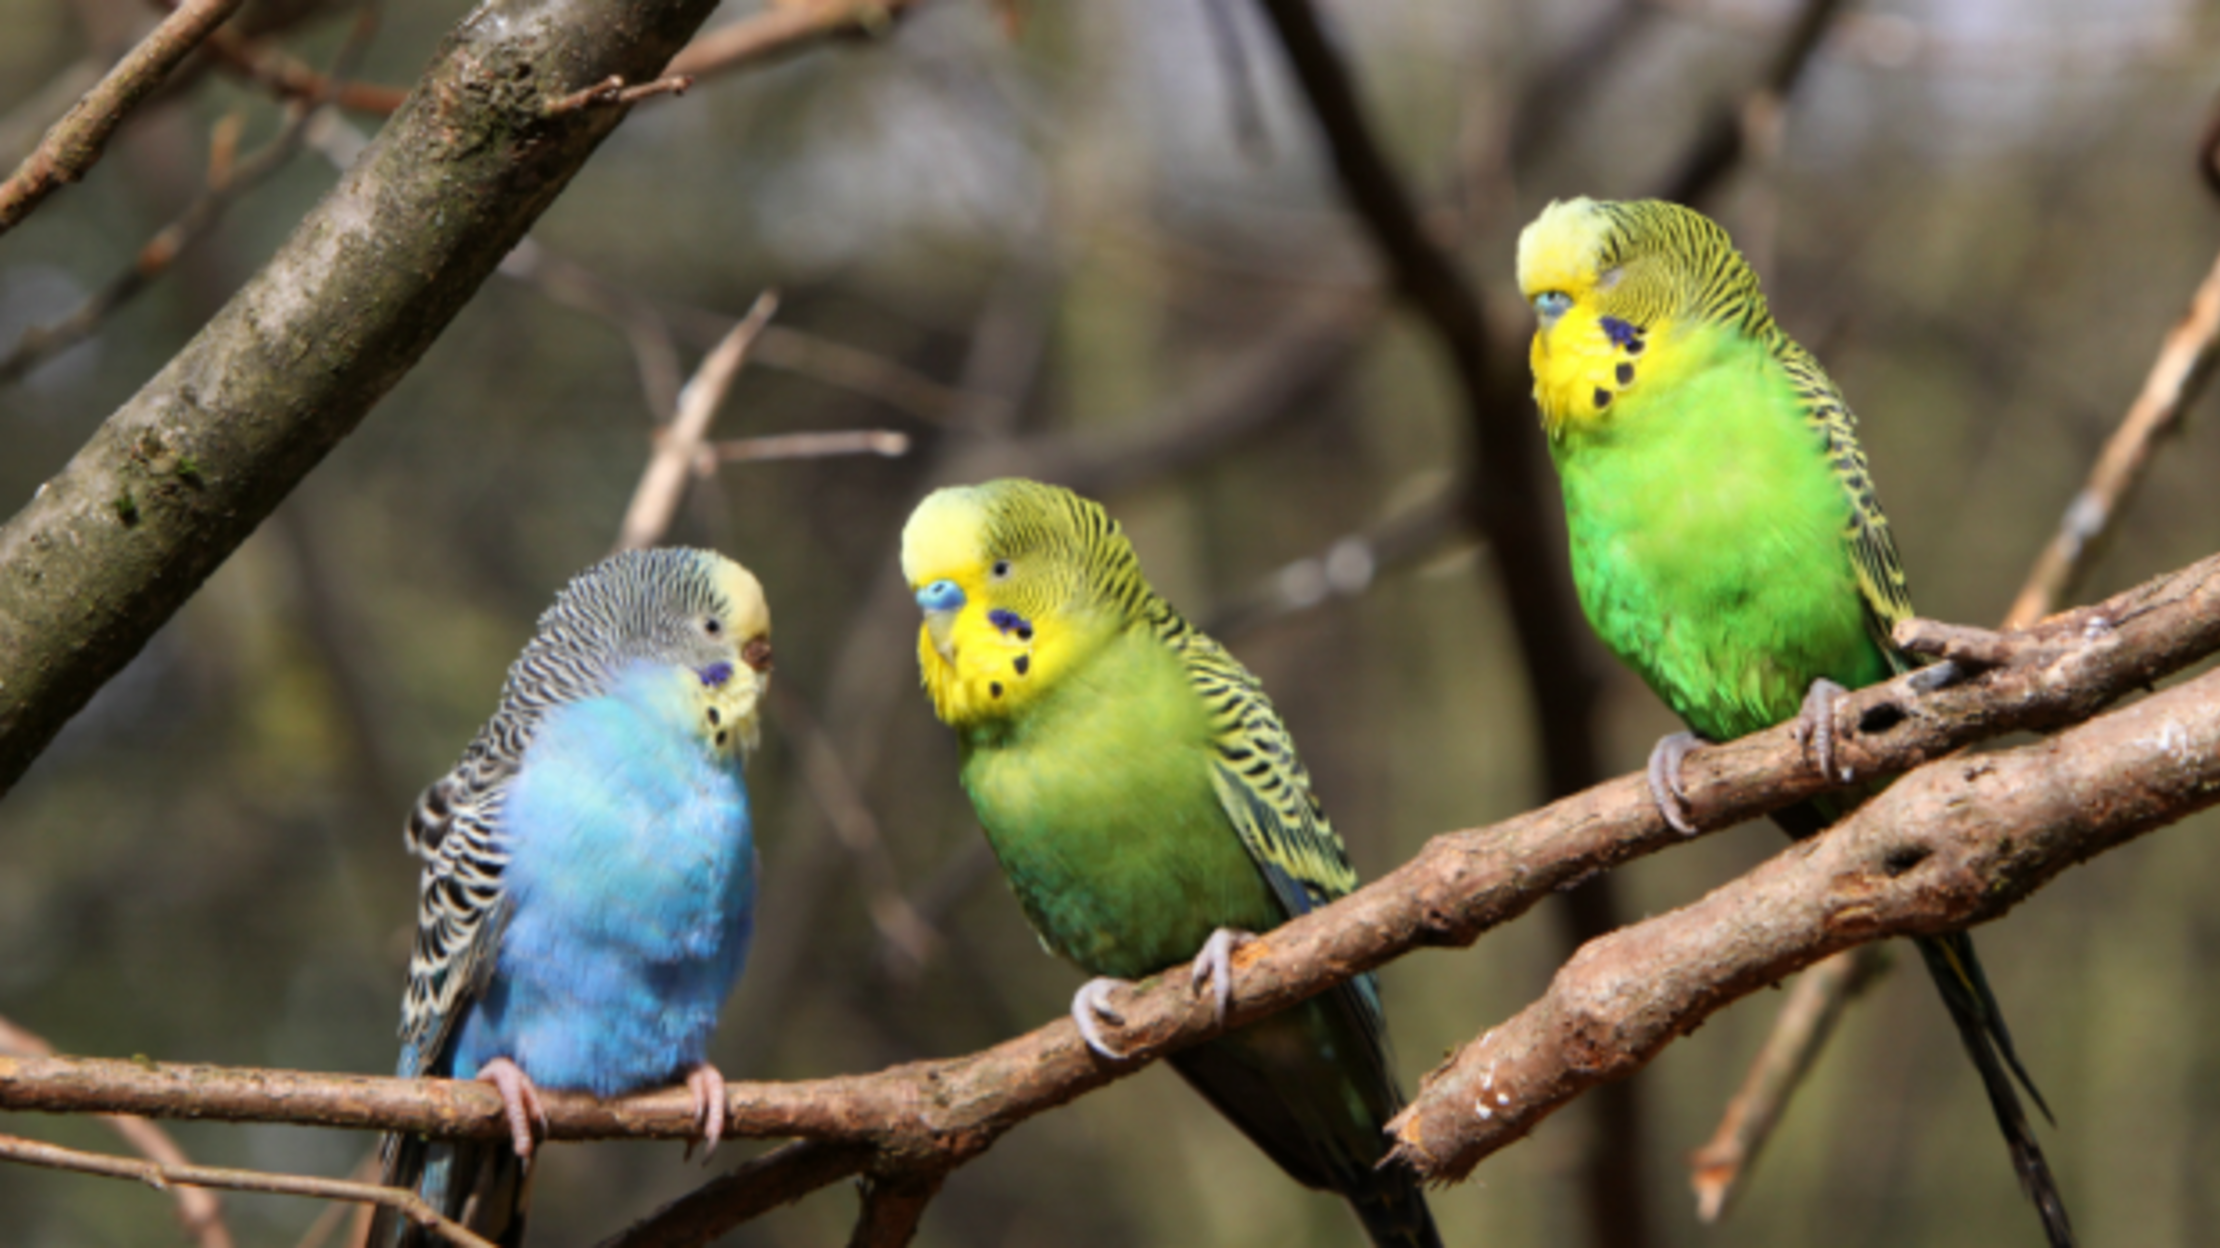 Yawning Is Contagious for Some Parakeets, Too | Mental Floss